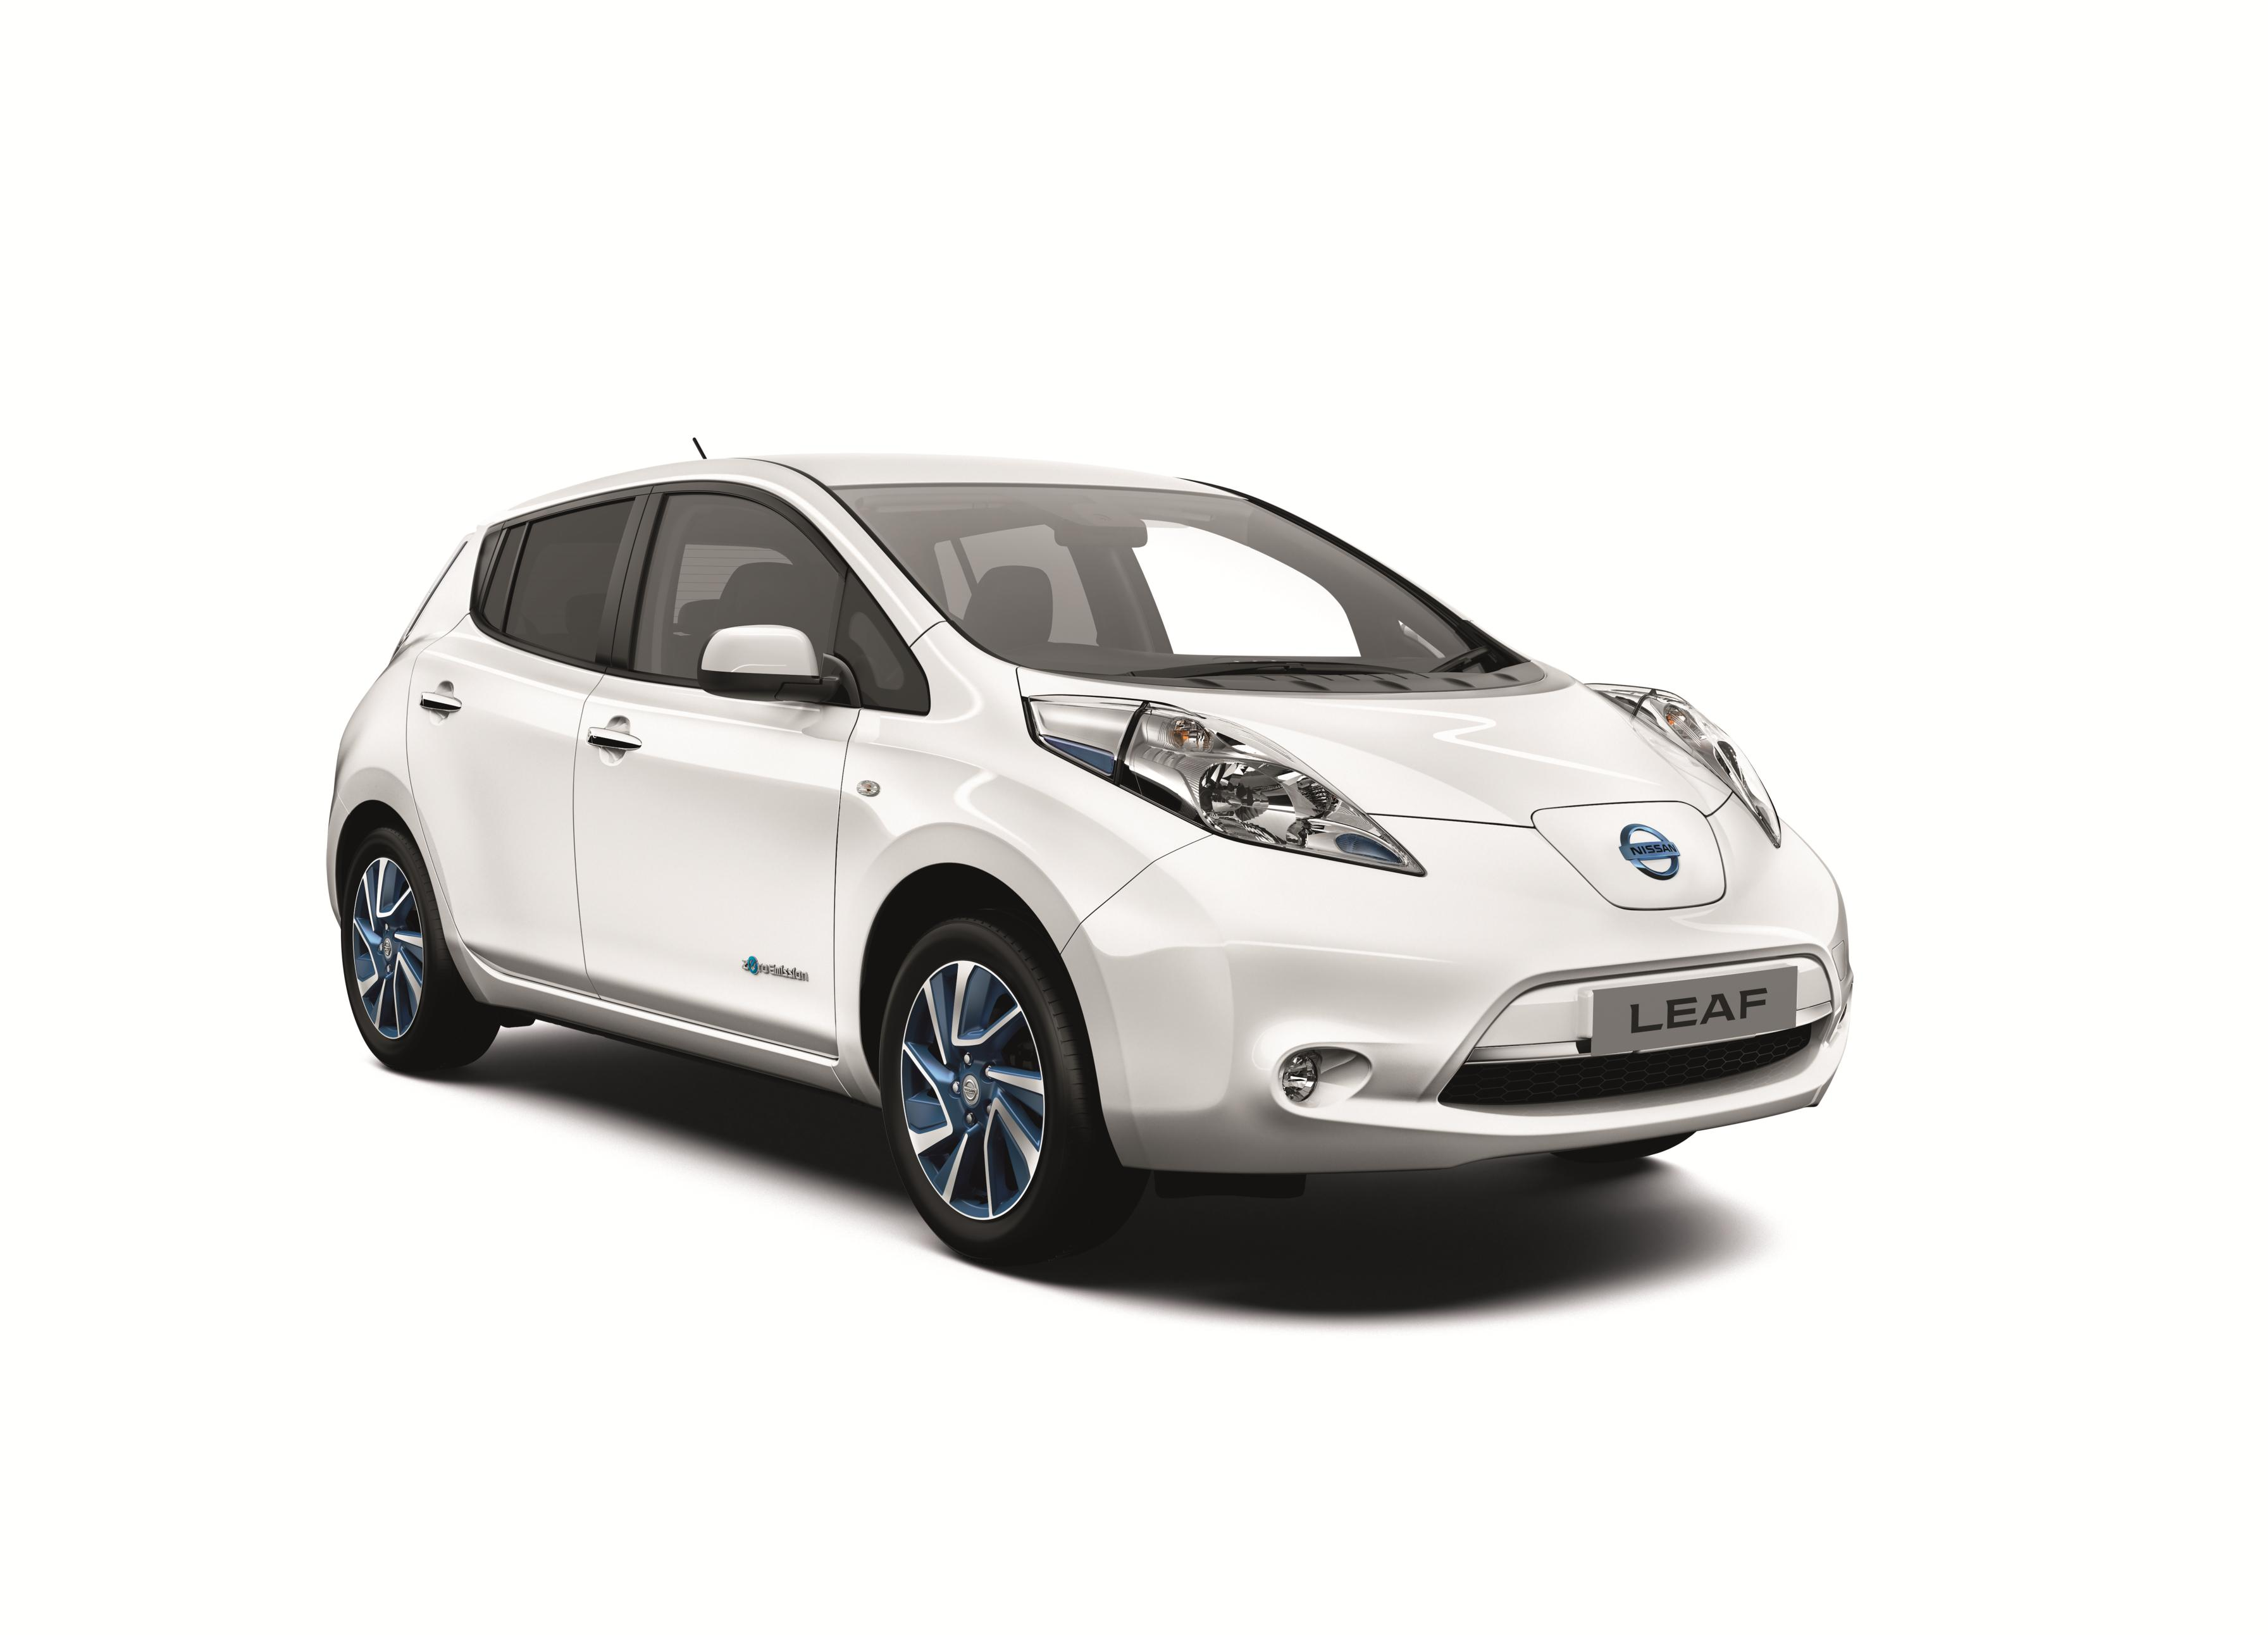 2015 nissan leaf now available in acenta grade in the uk autoevolution. Black Bedroom Furniture Sets. Home Design Ideas